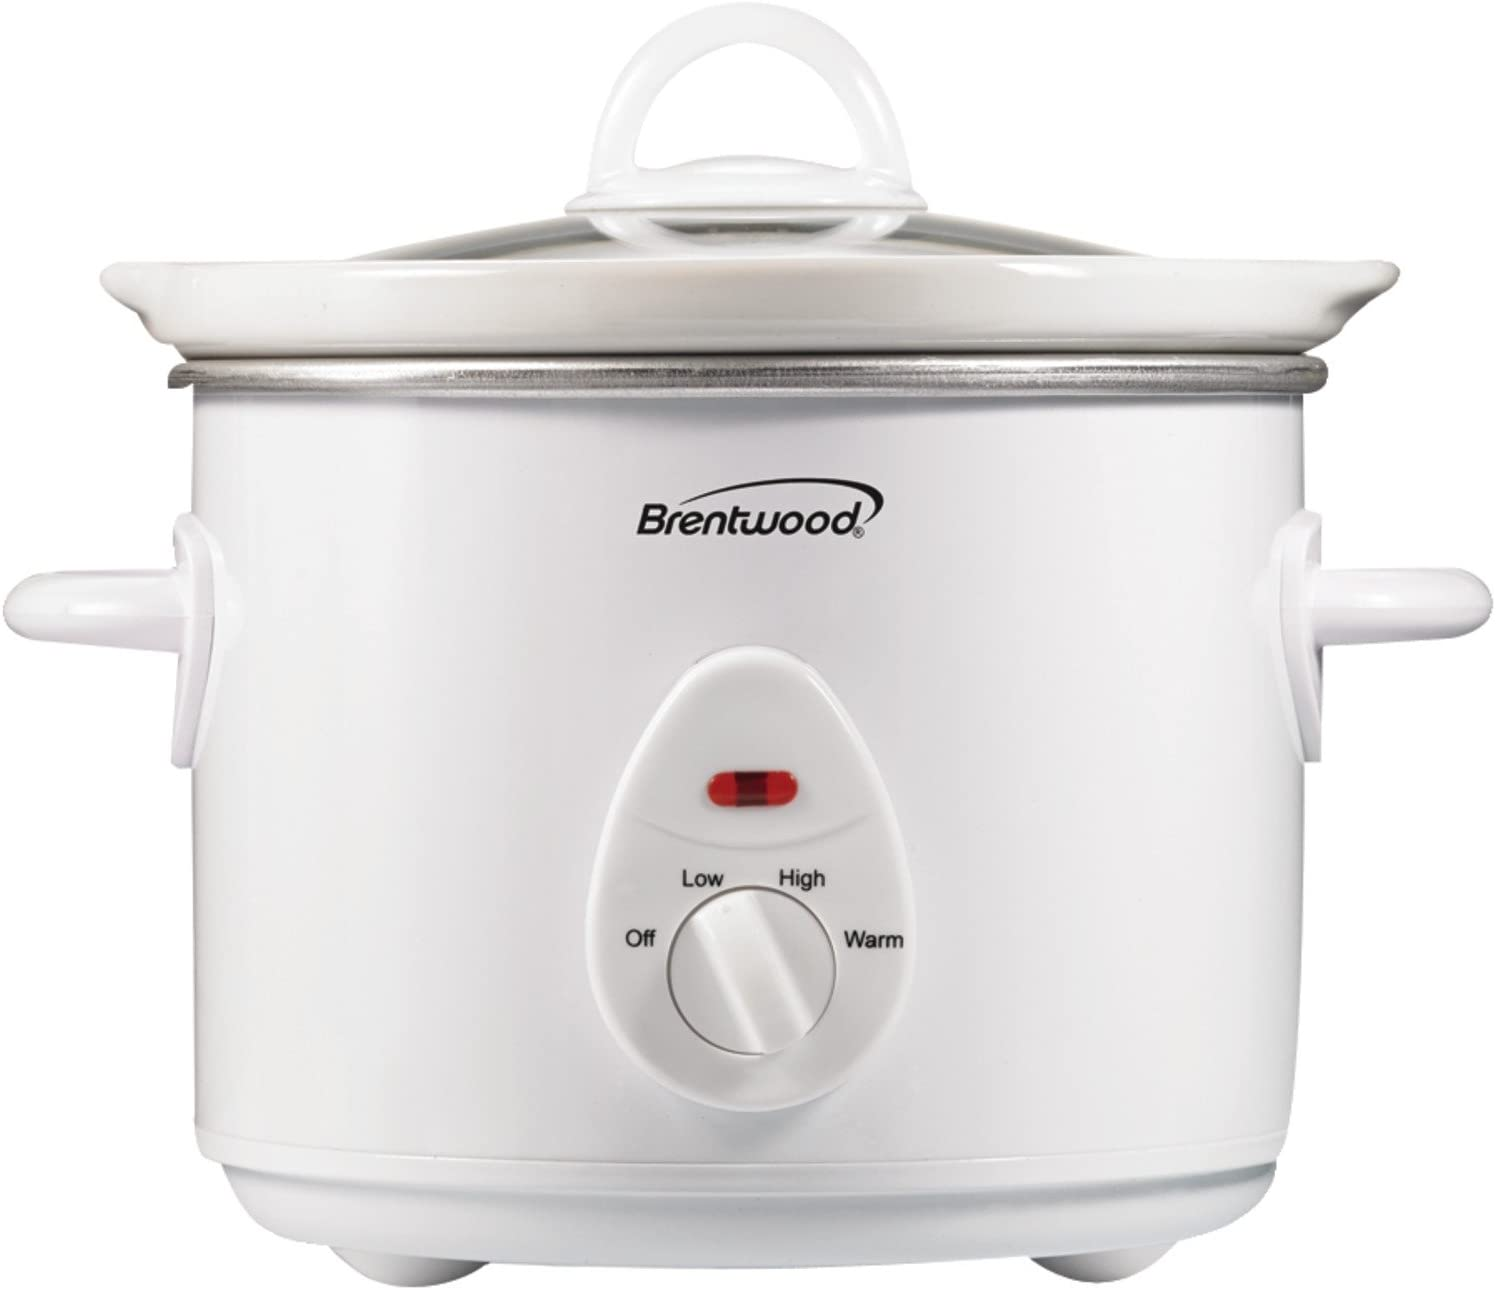 Brentwood Appliances SC-135W 3-Quart Slow Cooker (White)